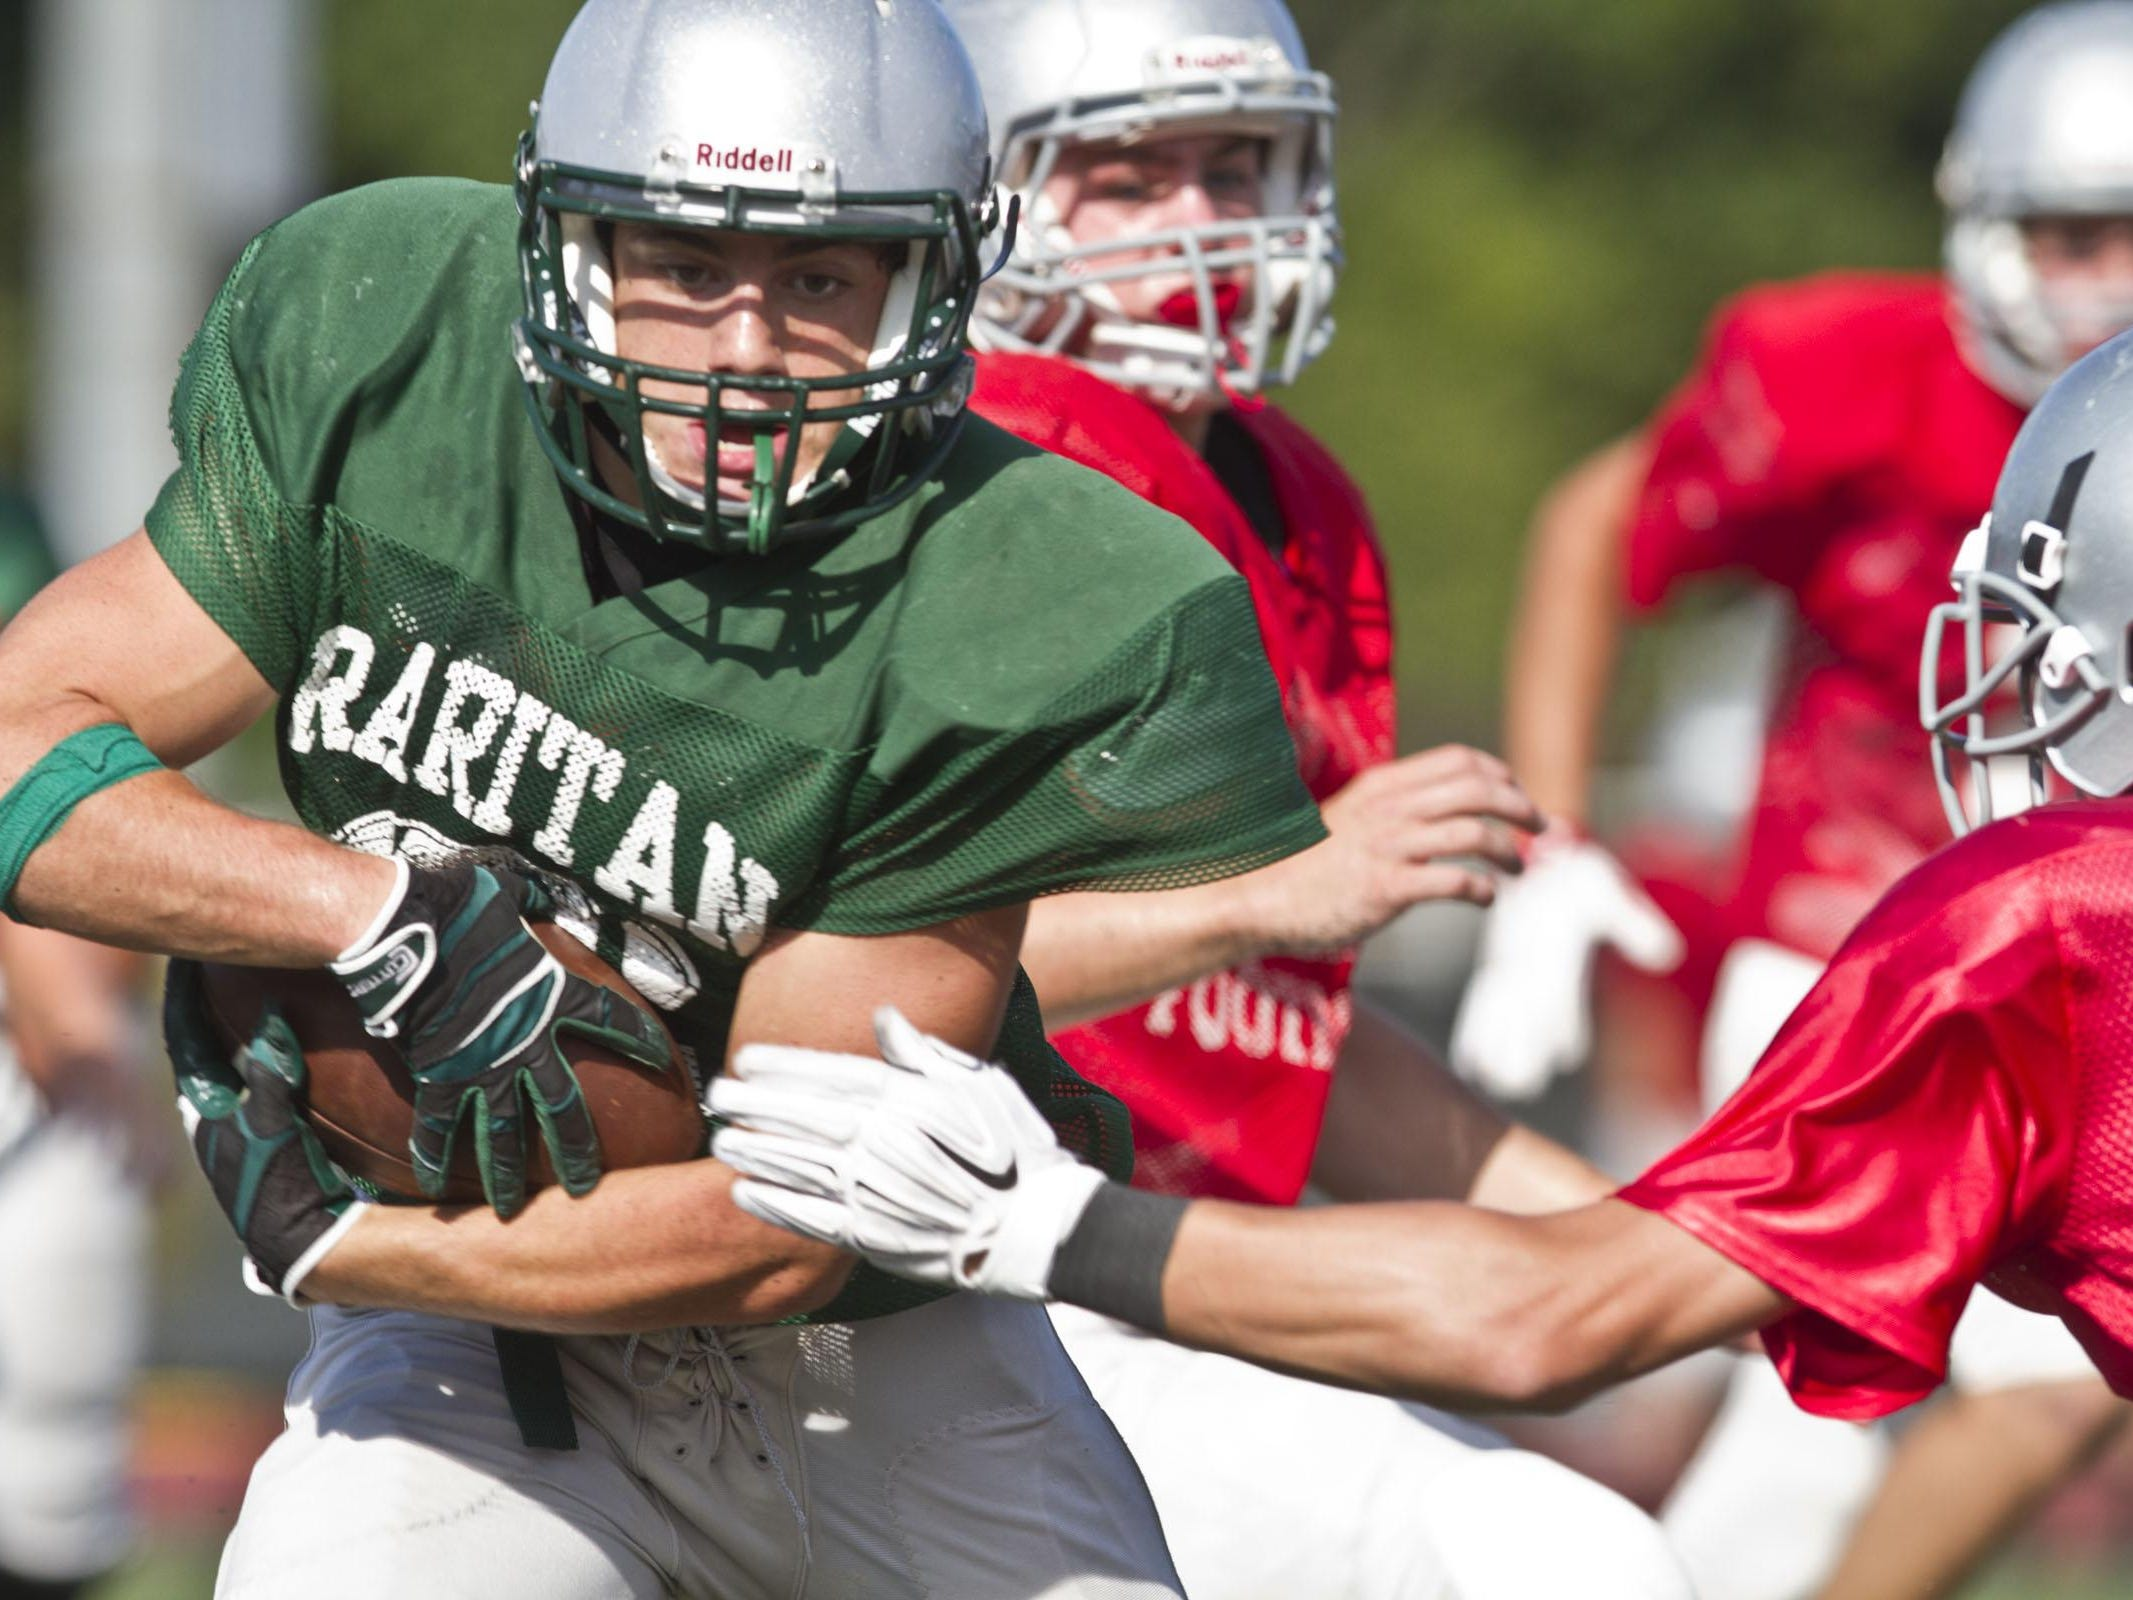 Raritan's Derek Ernst runs with the ball during a scrimmage against Wall on Aug. 27.